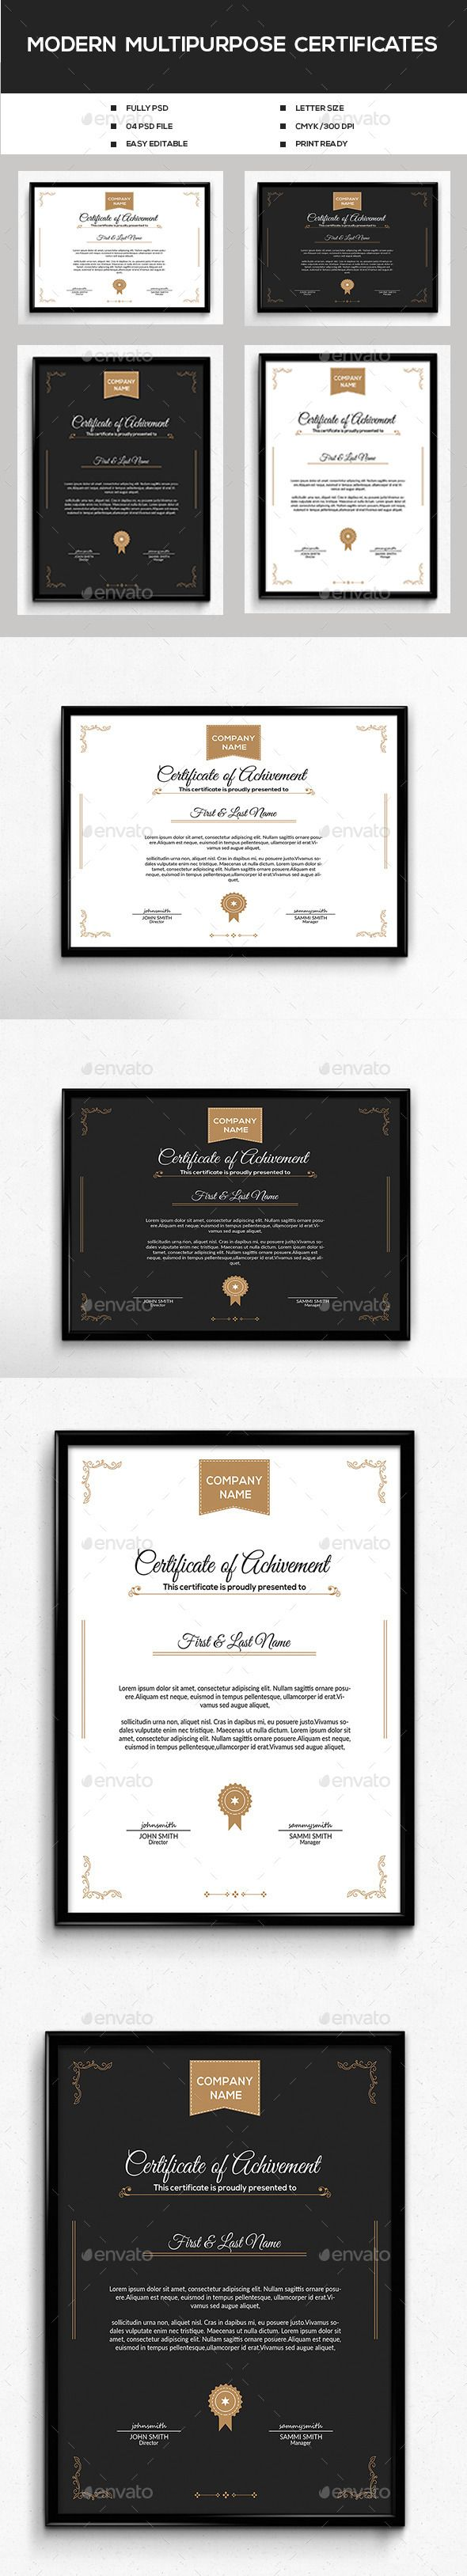 34 best cert design images on pinterest award certificates design modern multipurpose certificates template psd download here httpgraphicriver yelopaper Images